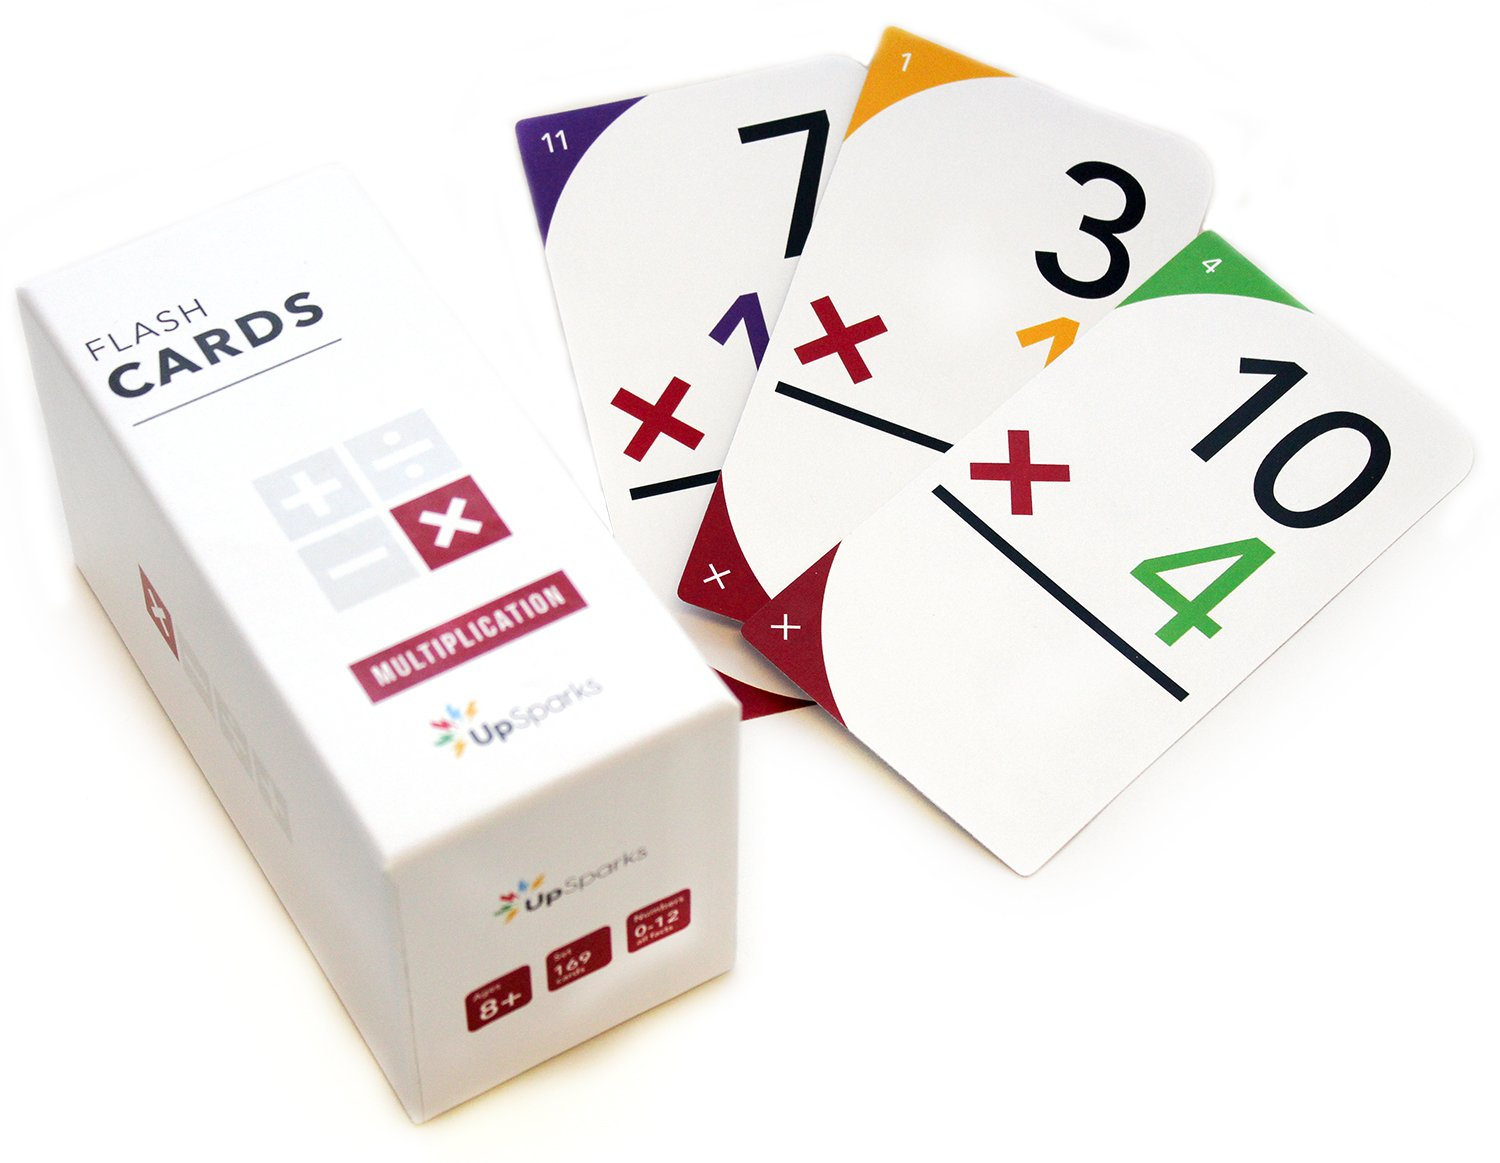 photo relating to Printable Multiplication Flash Cards 0 12 identified as Purchase UpSparks Multiplication Flash Playing cards (0-12 All Data